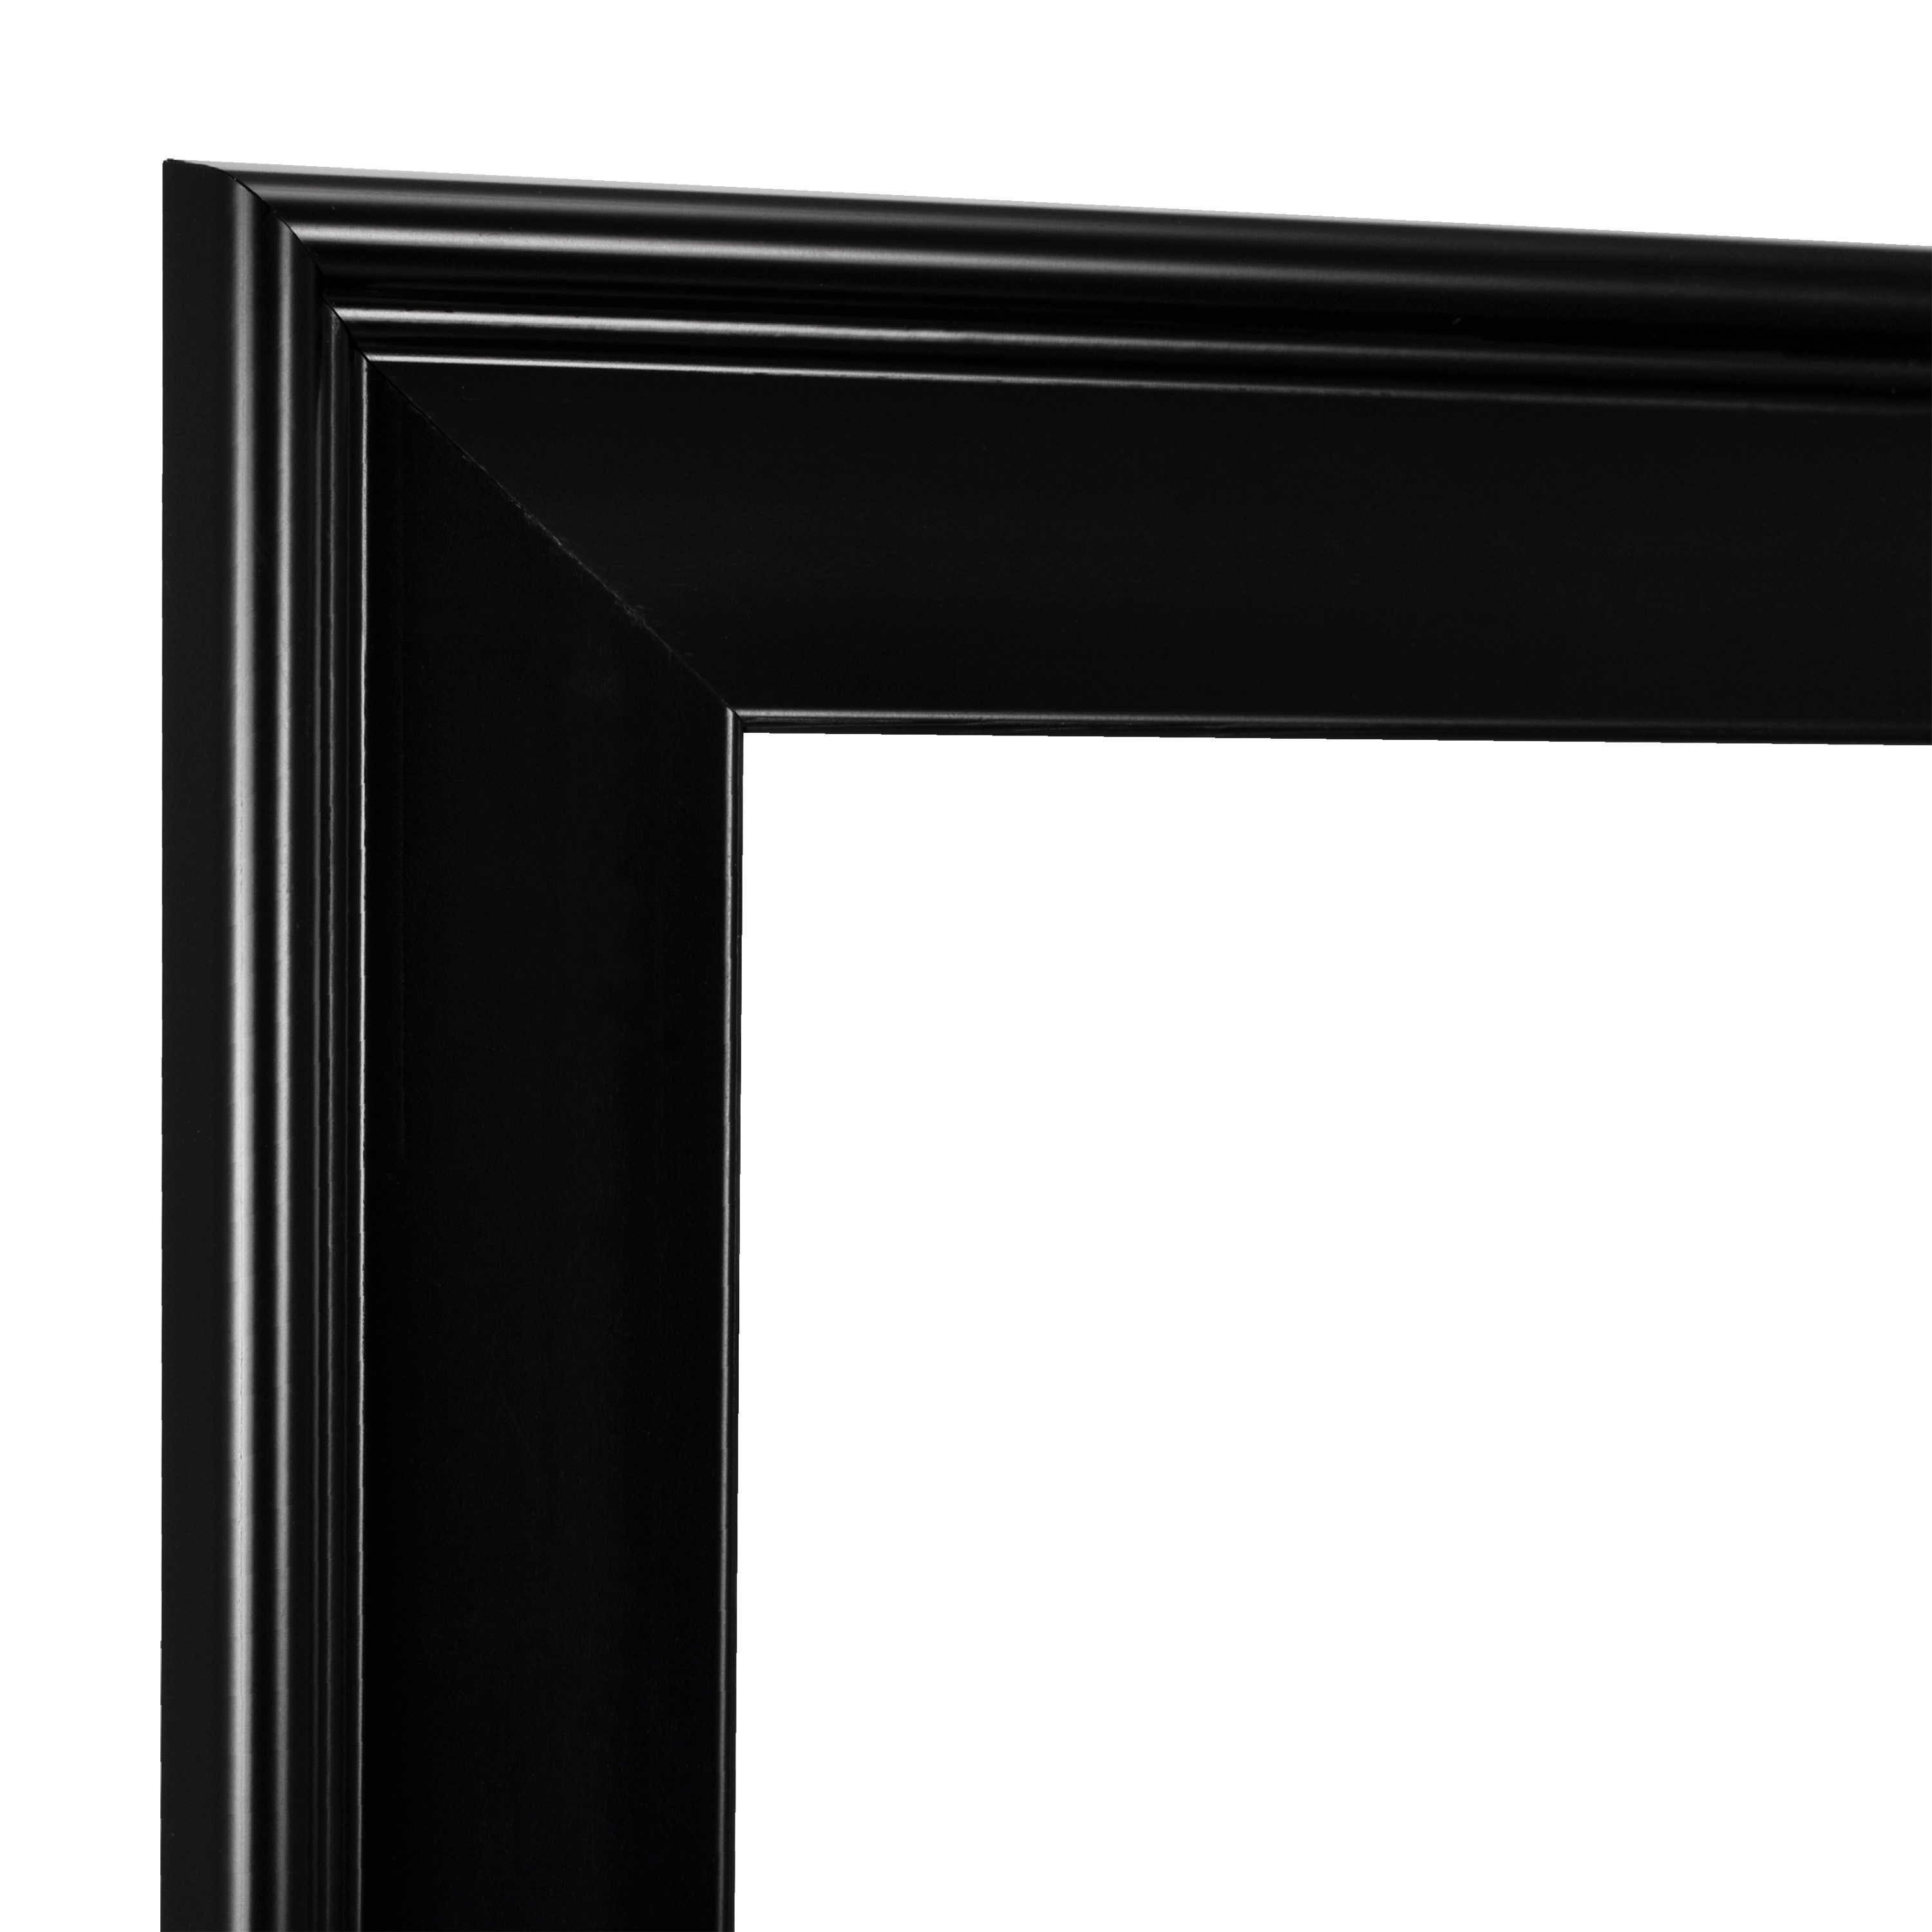 Mainstays 24x36 Casual Poster and Picture Frame, Black - Walmart.com